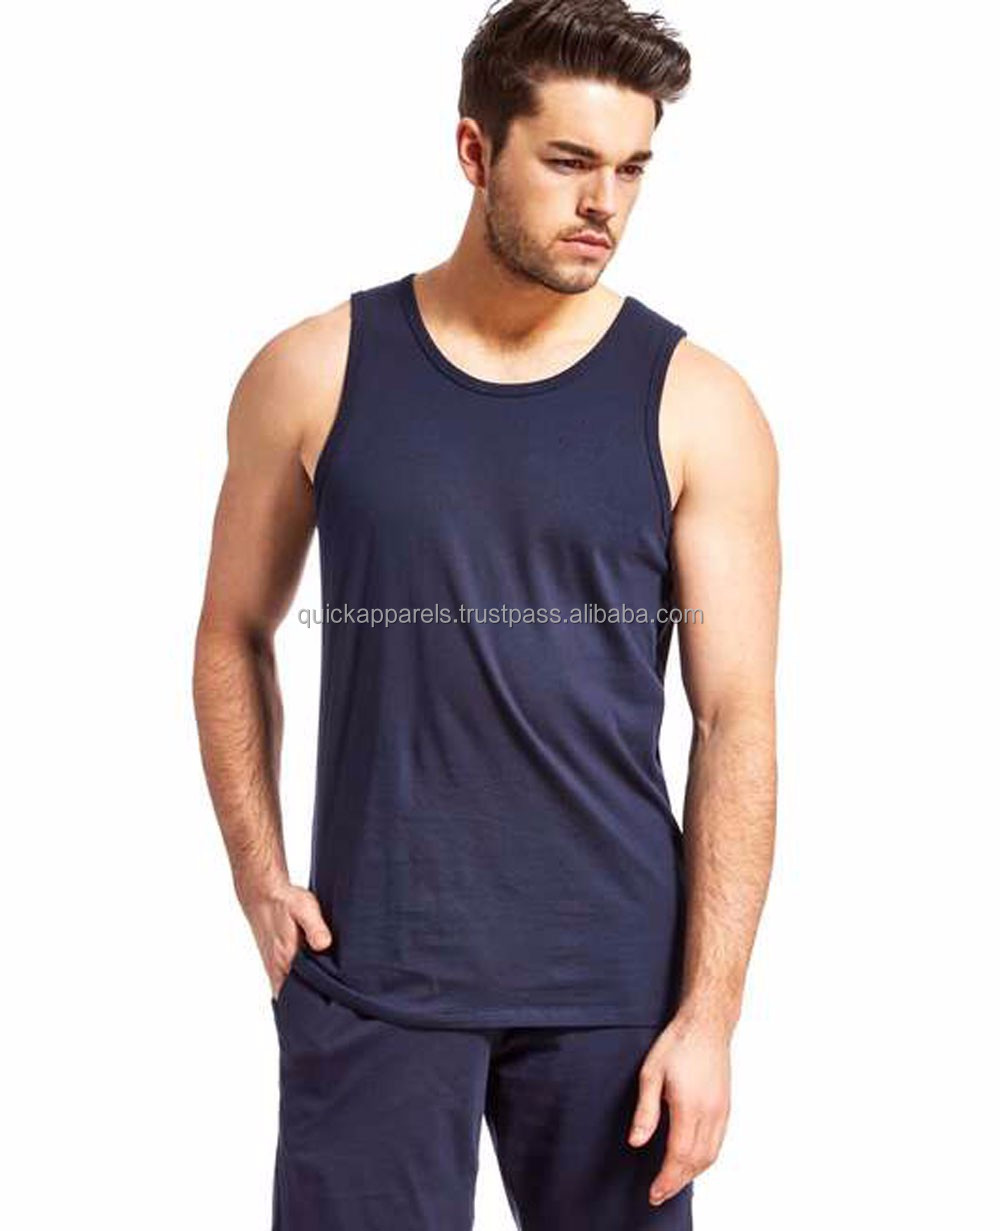 Cotton tank top with front pocket/tank top with front printing pocket/Custom design long line tank top